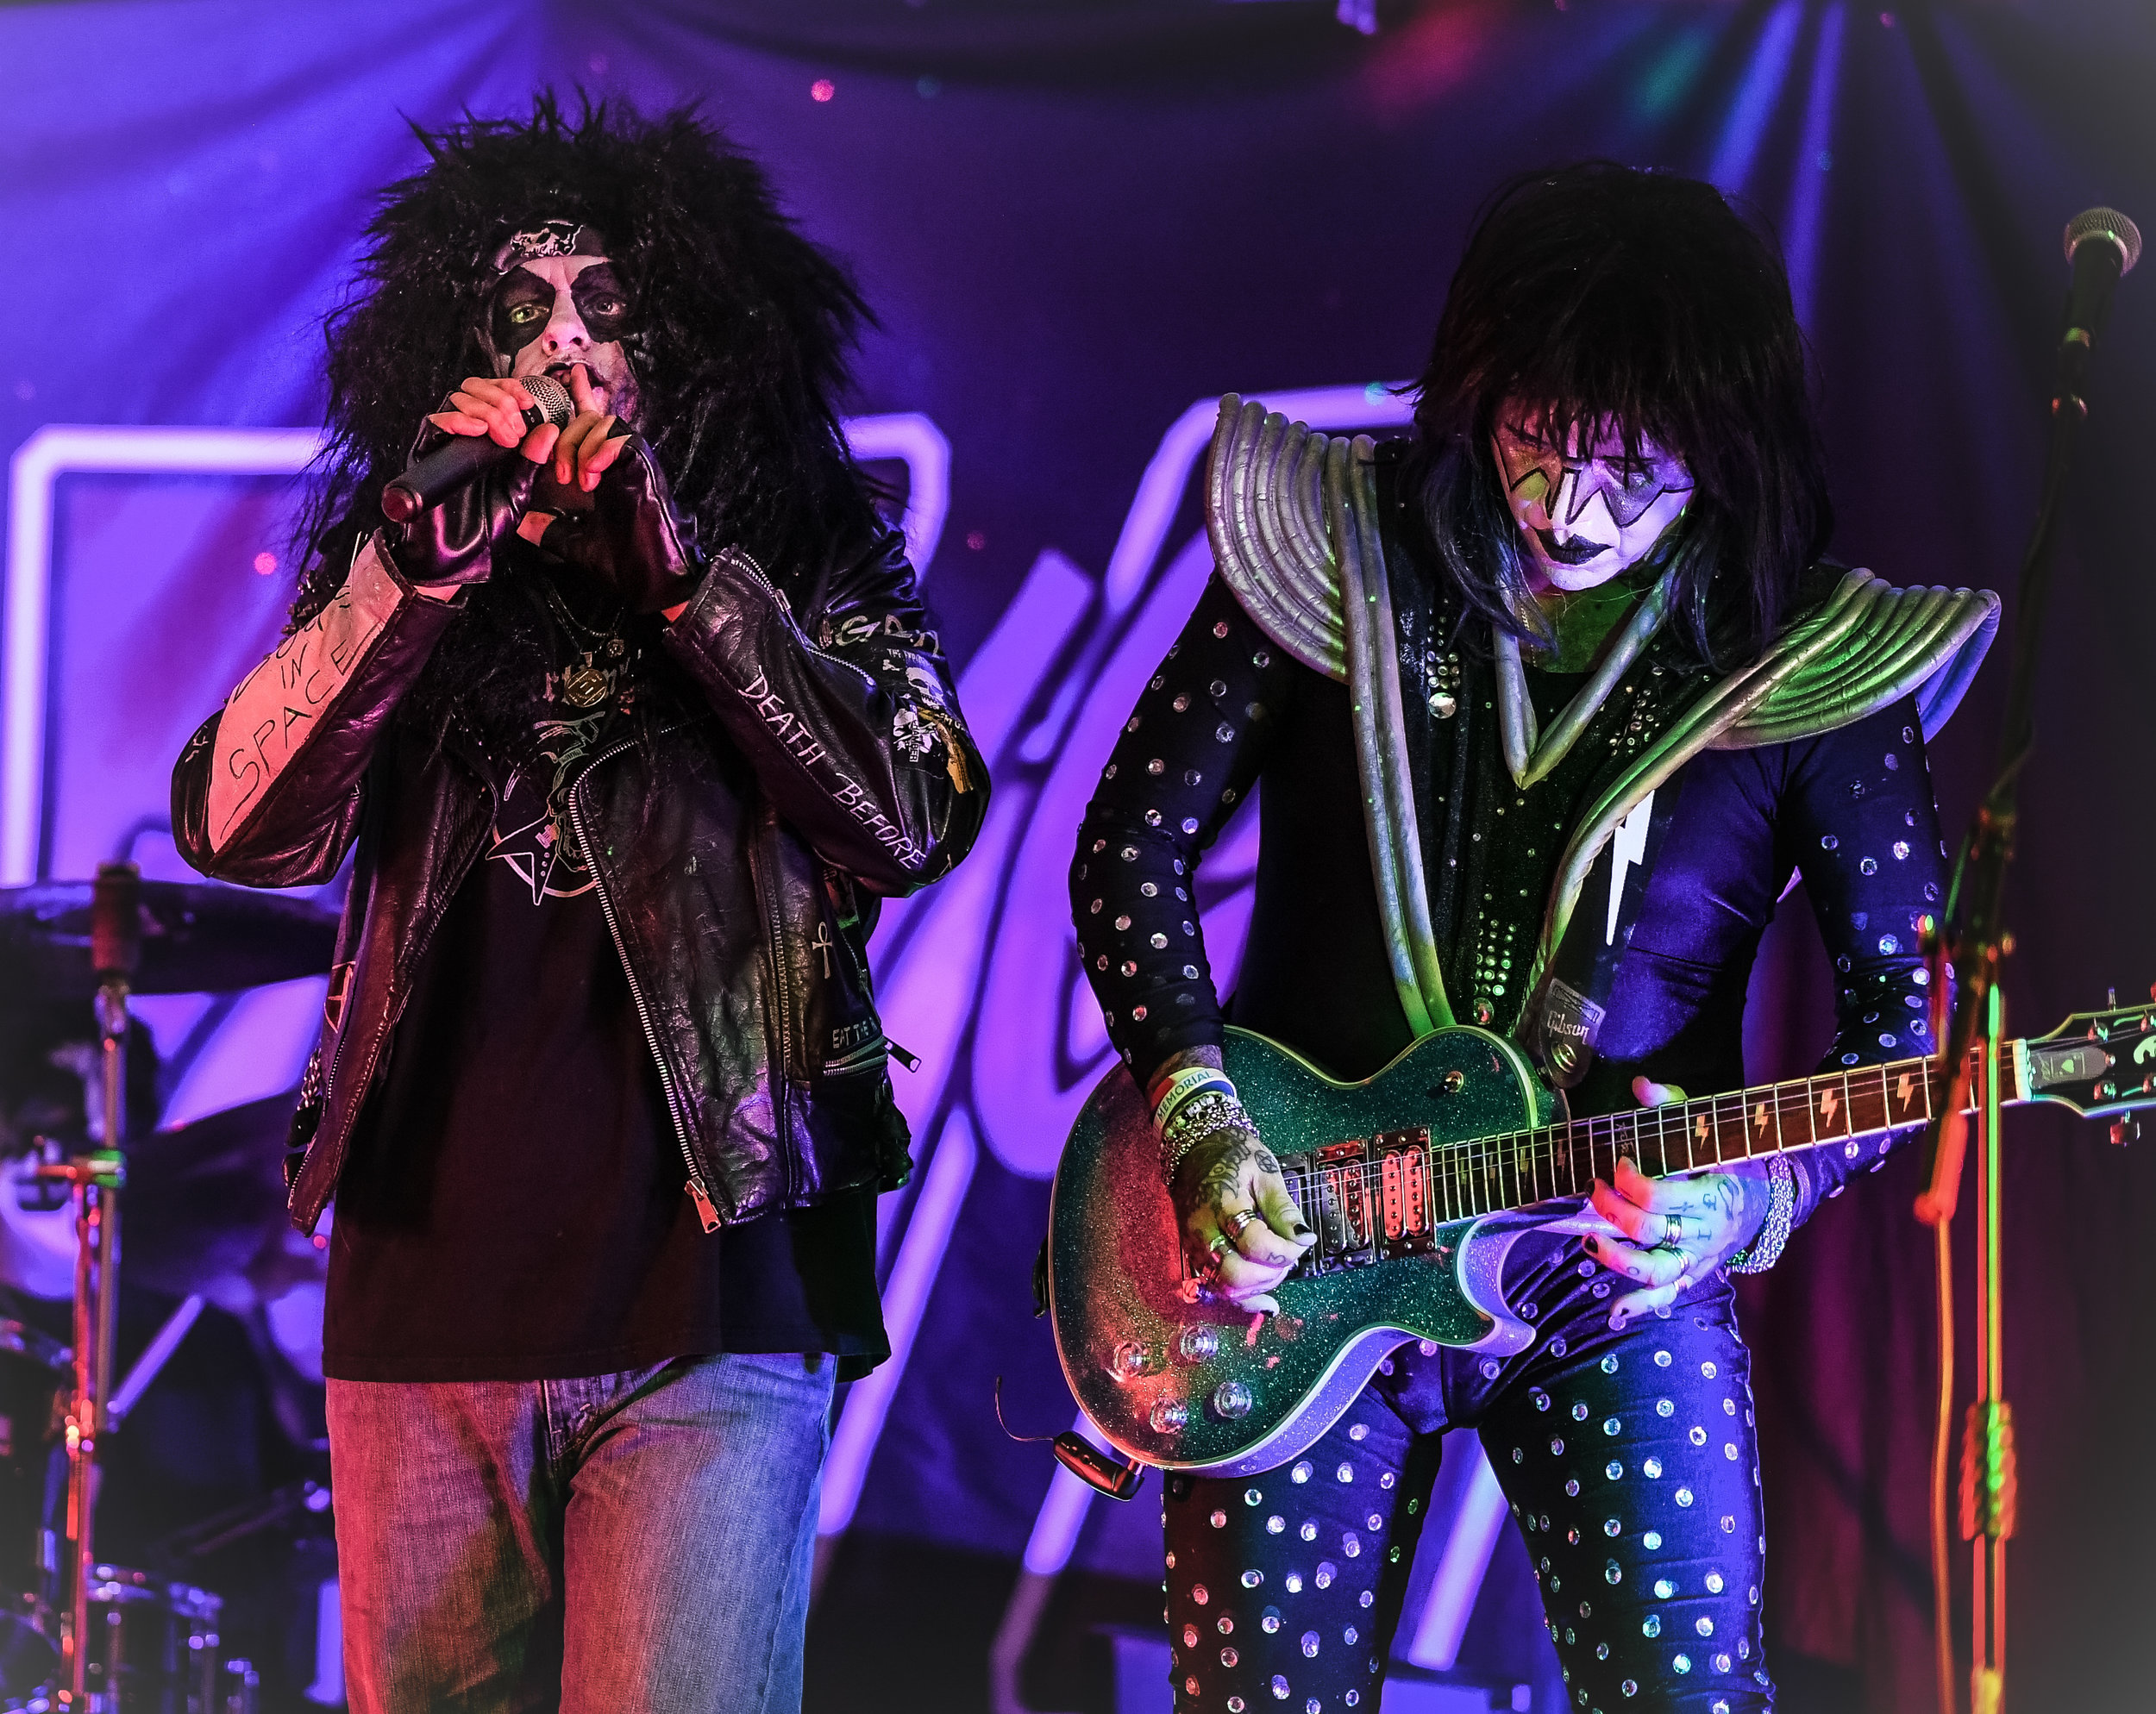 moa--kiss-forever-rock-addiction_45667607452_o.jpg